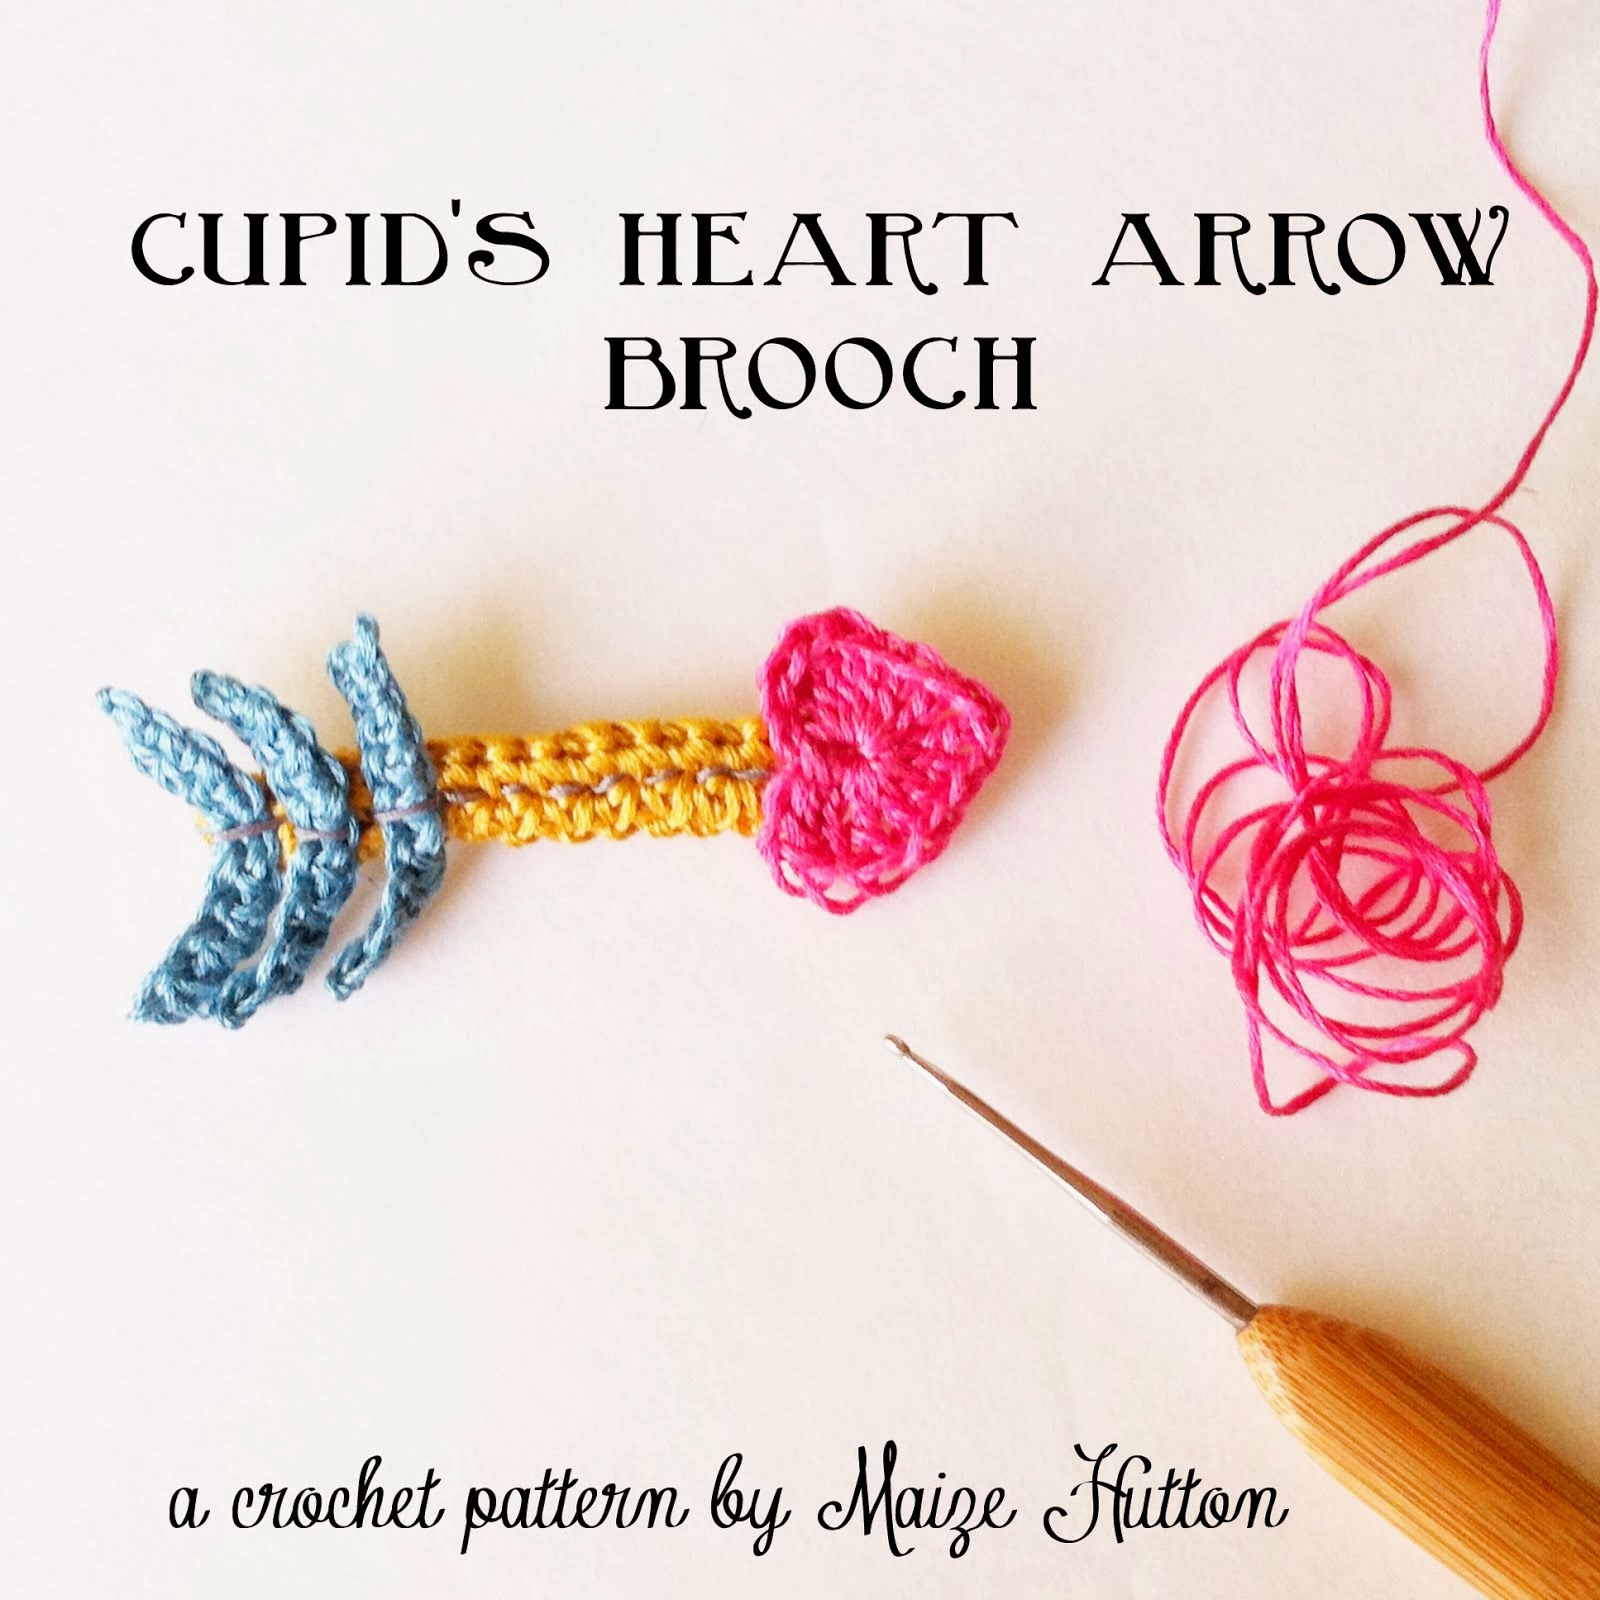 Cupid's Heart Arrow Brooch